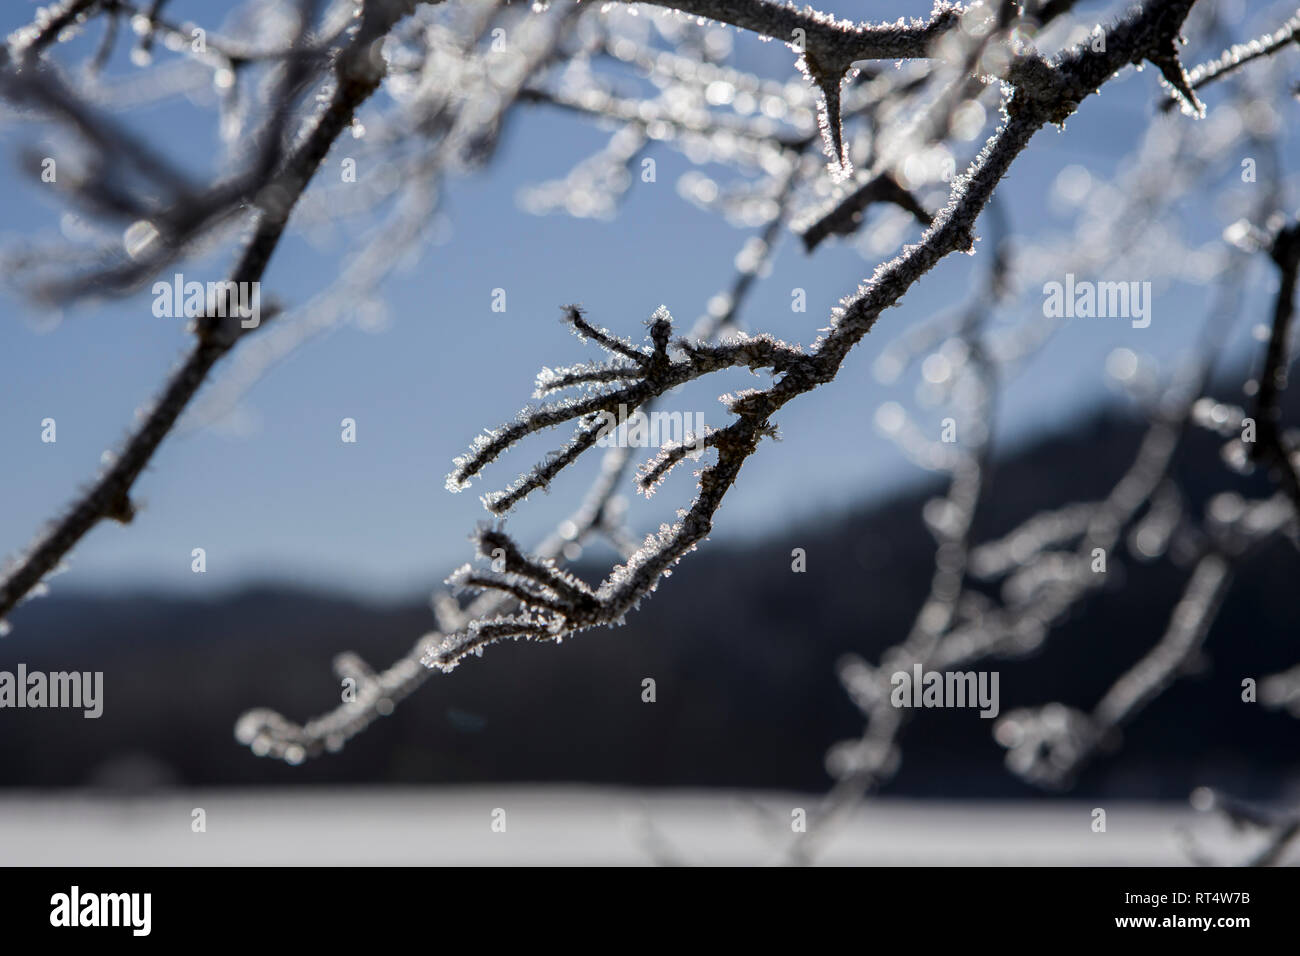 An abstract photo of hoar frost on tree branches near Coeur d'Alene, Idaho. - Stock Image